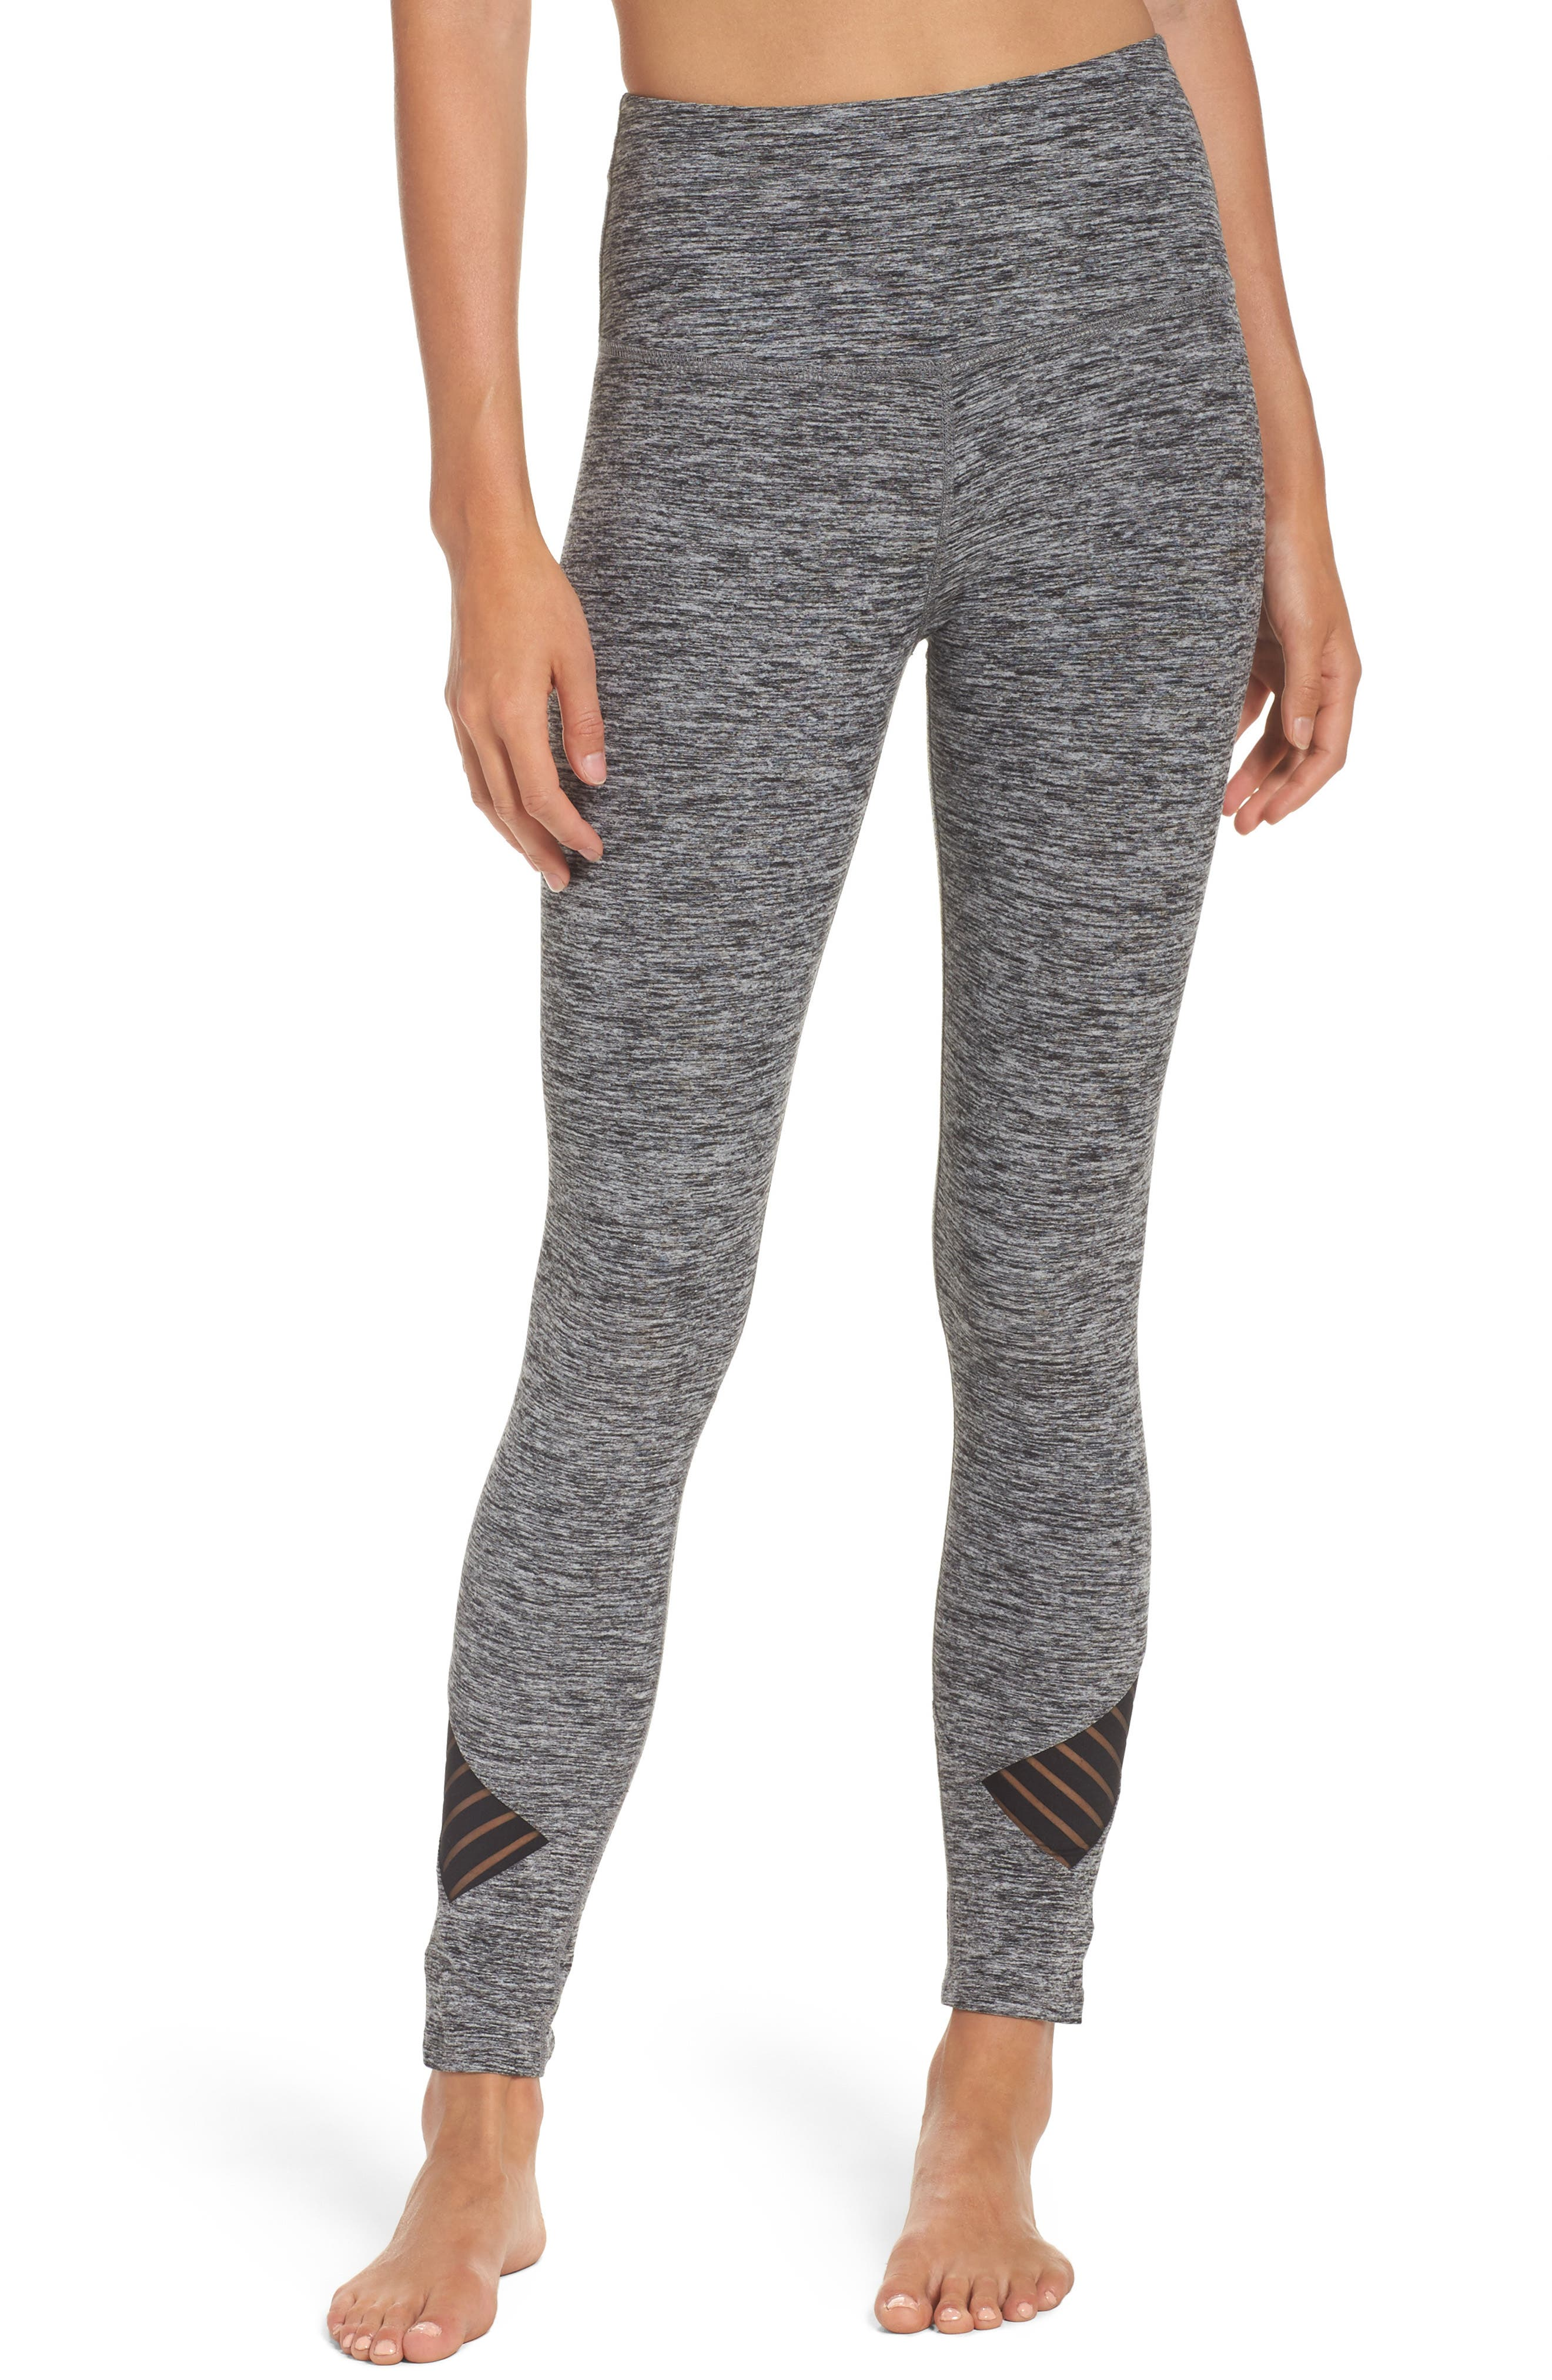 Alternate Image 1 Selected - Beyond Yoga Stacked & Sliced High Waist Leggings